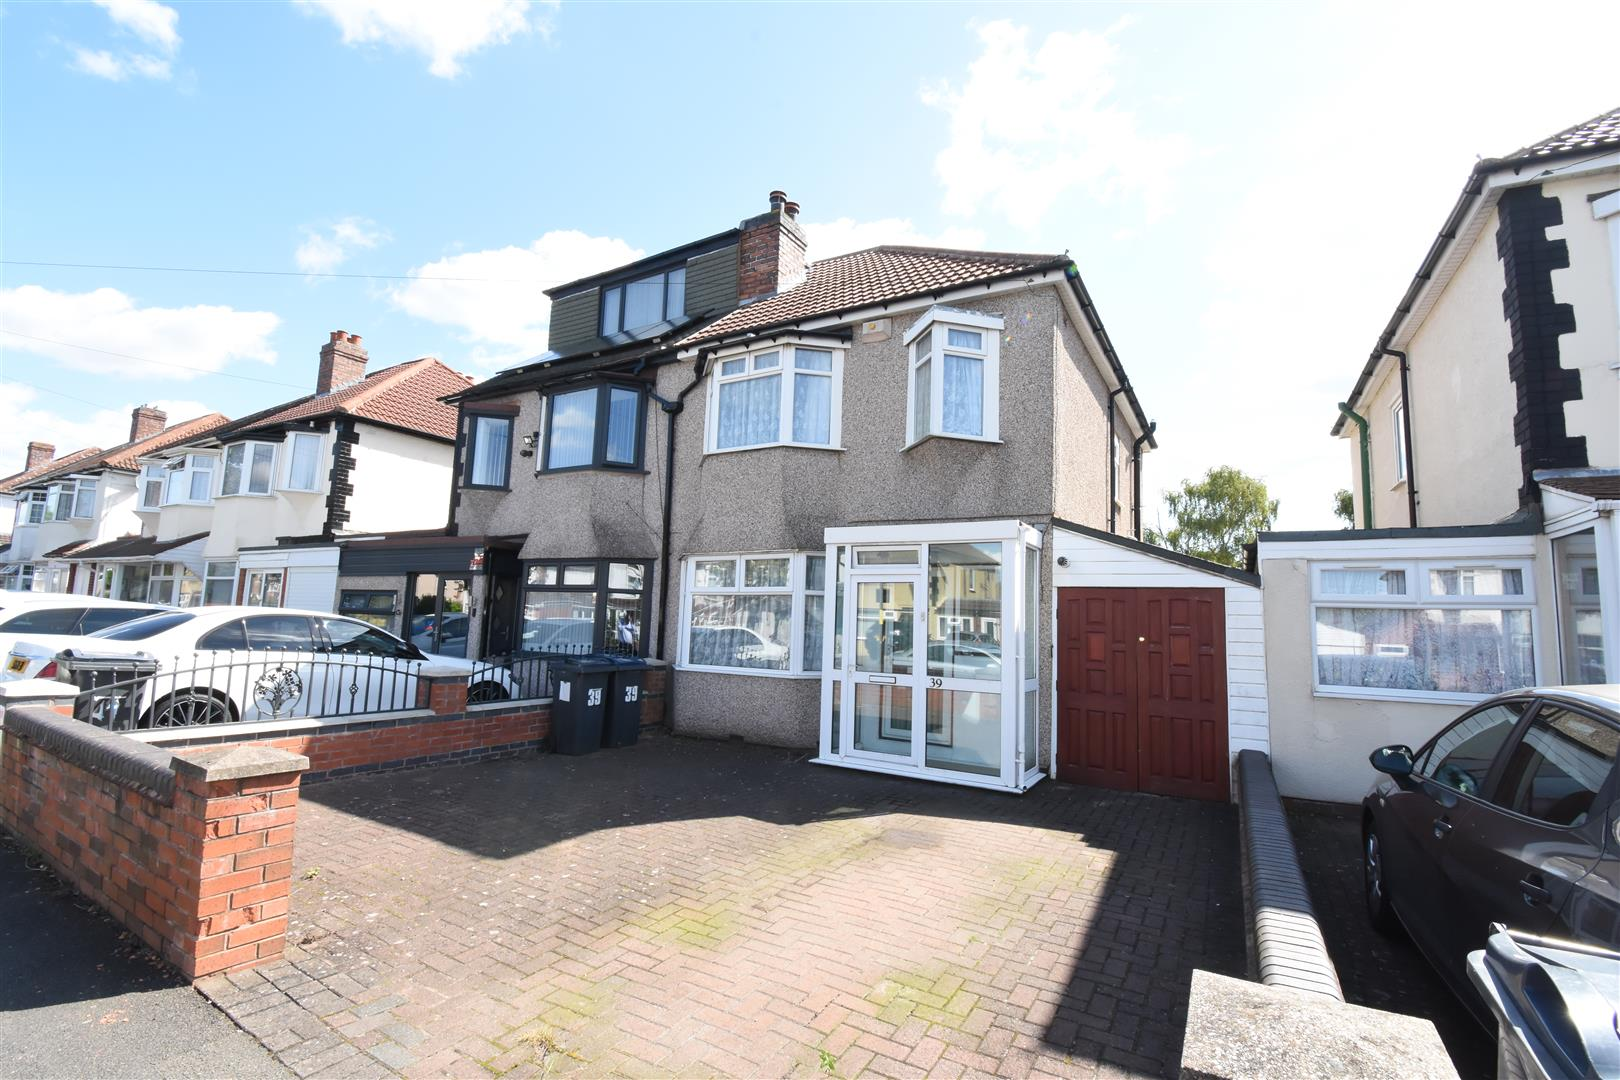 3 bed house for sale in Mickleover Road, Ward End, Birmingham - Property Image 1